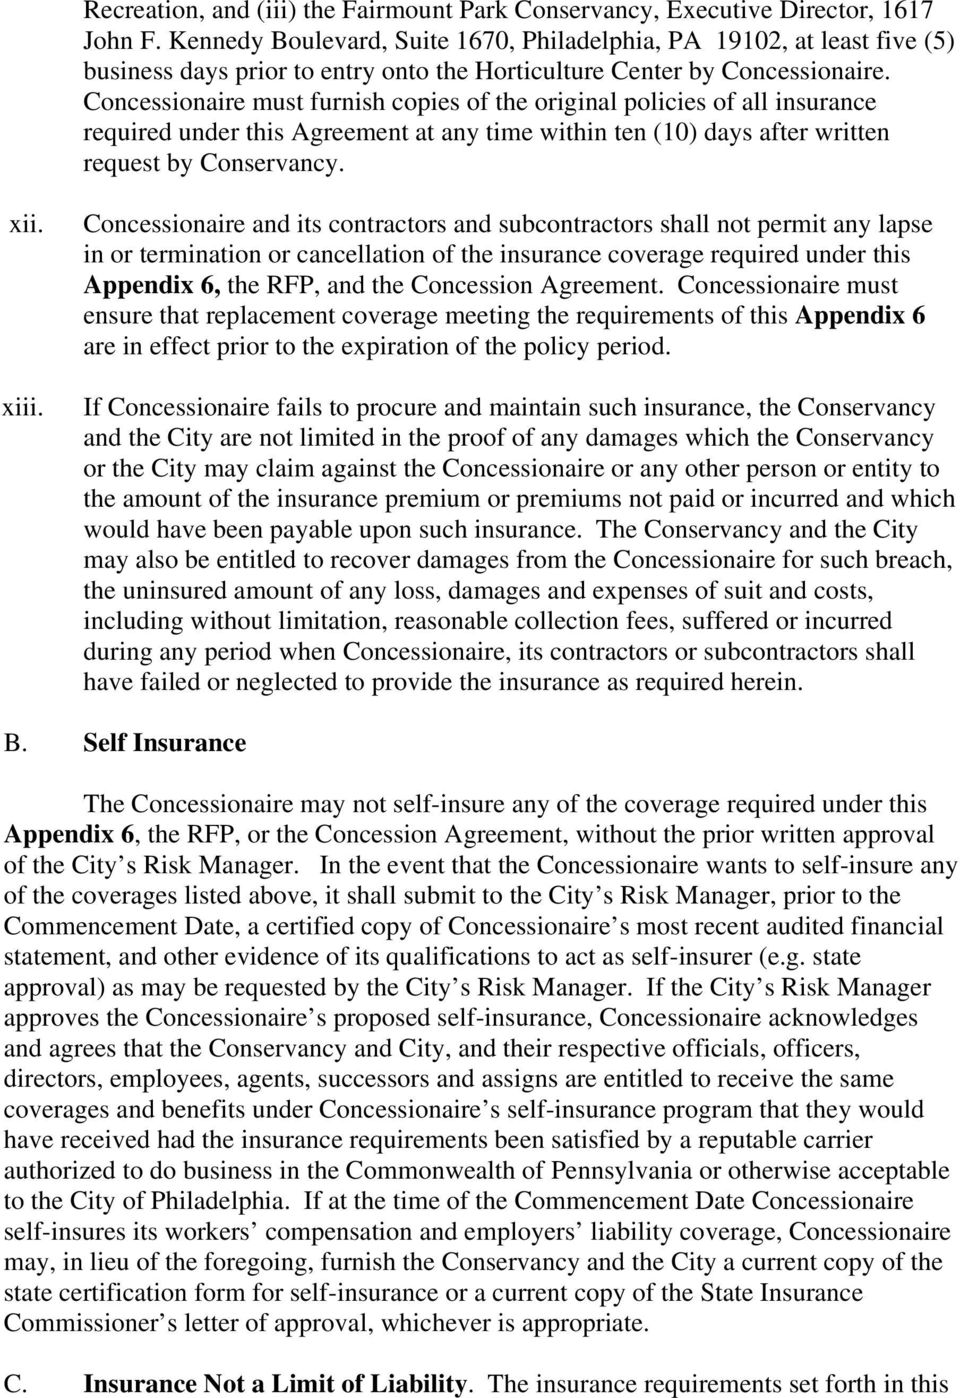 Concessionaire must furnish copies of the original policies of all insurance required under this Agreement at any time within ten (10) days after written request by Conservancy. xii. xiii.